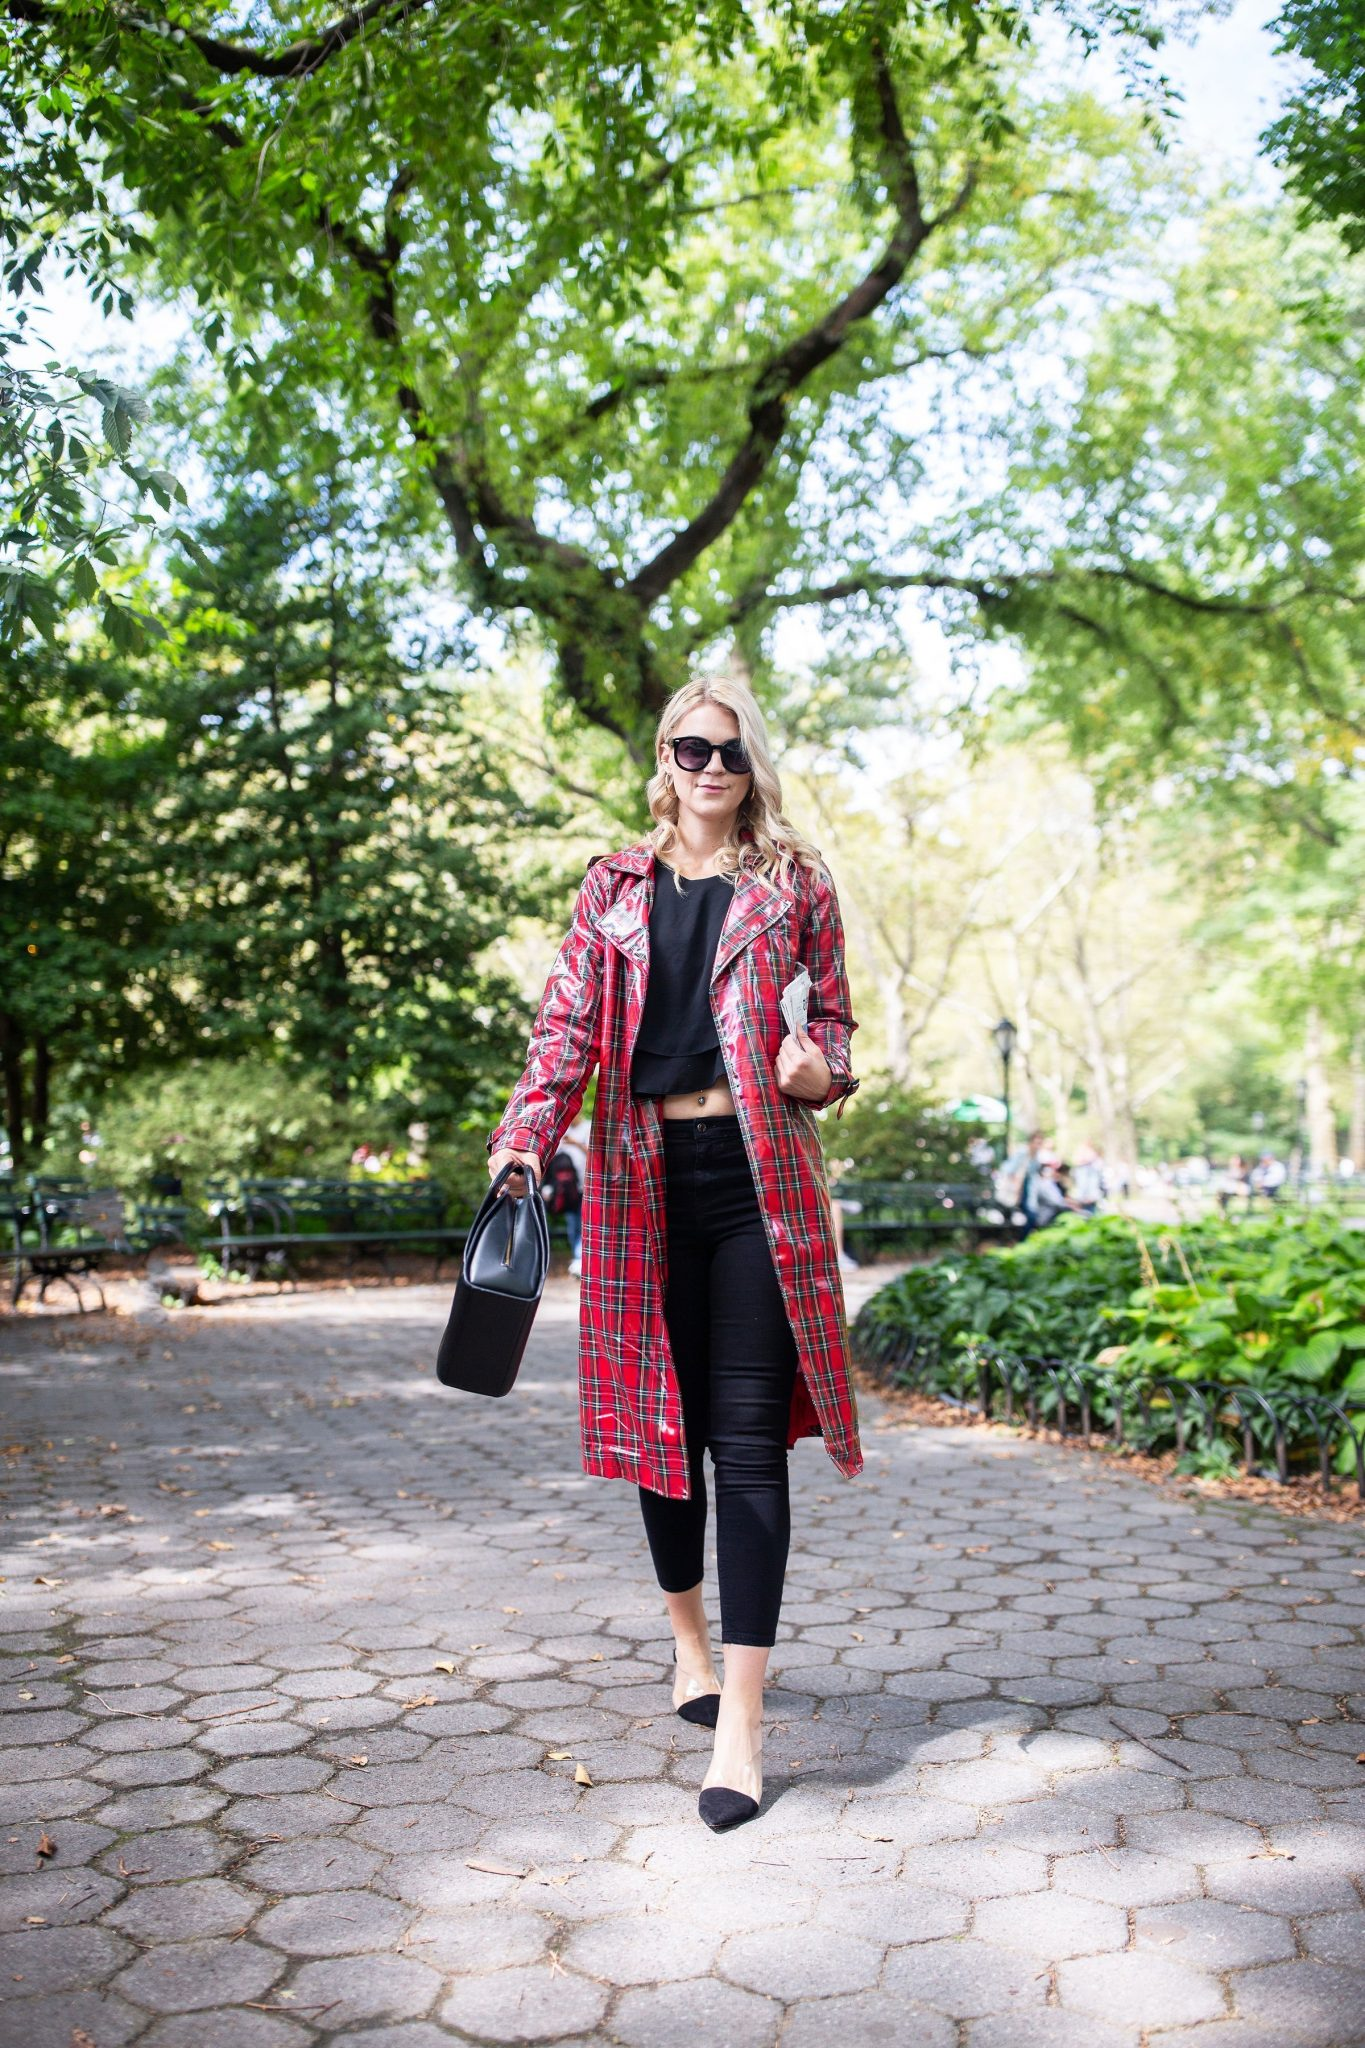 Plaid Trench Coat by popular Seattle tall fashion blog, Whit Wanders: image of a woman wearing a Forever 21 plaid trench coat, black t-shirt, black jean, black frame sunglasses, and carrying a black bag.